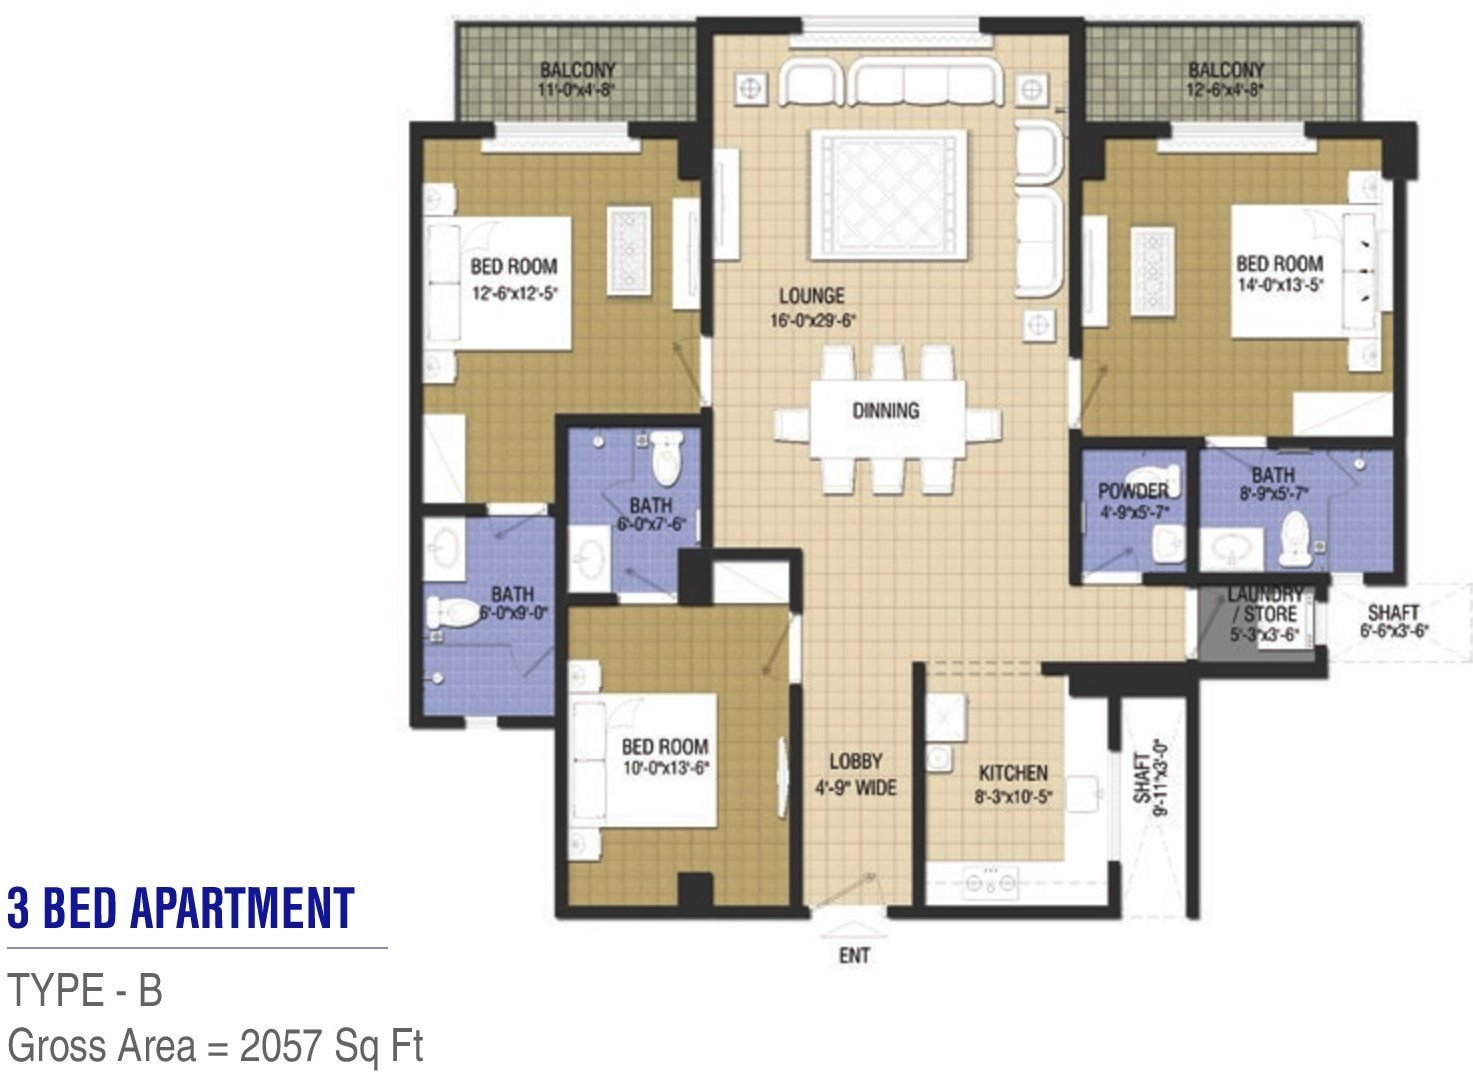 Goldcrest Chic 2 - 3 bed - Type B